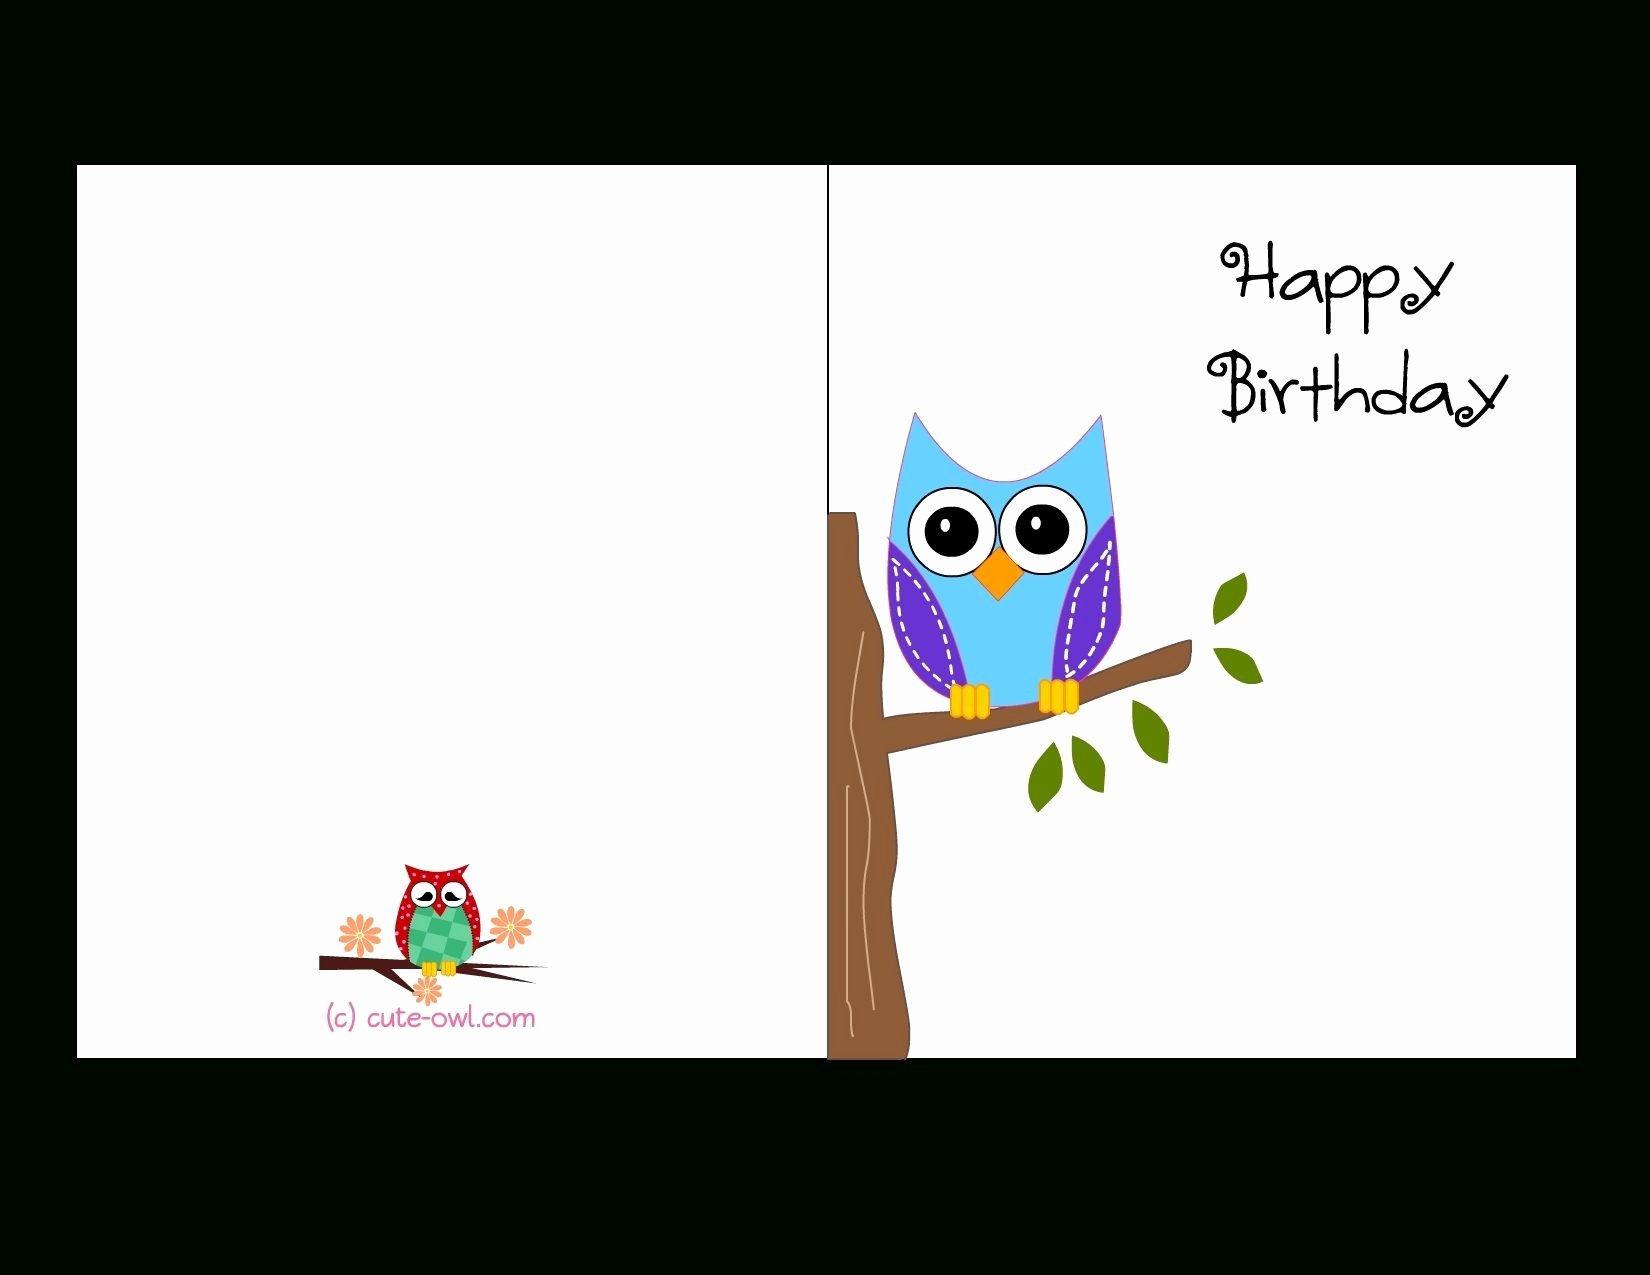 Greeting Card Template Photoshop Awesome Birthday Card Template Printable Beepmunk